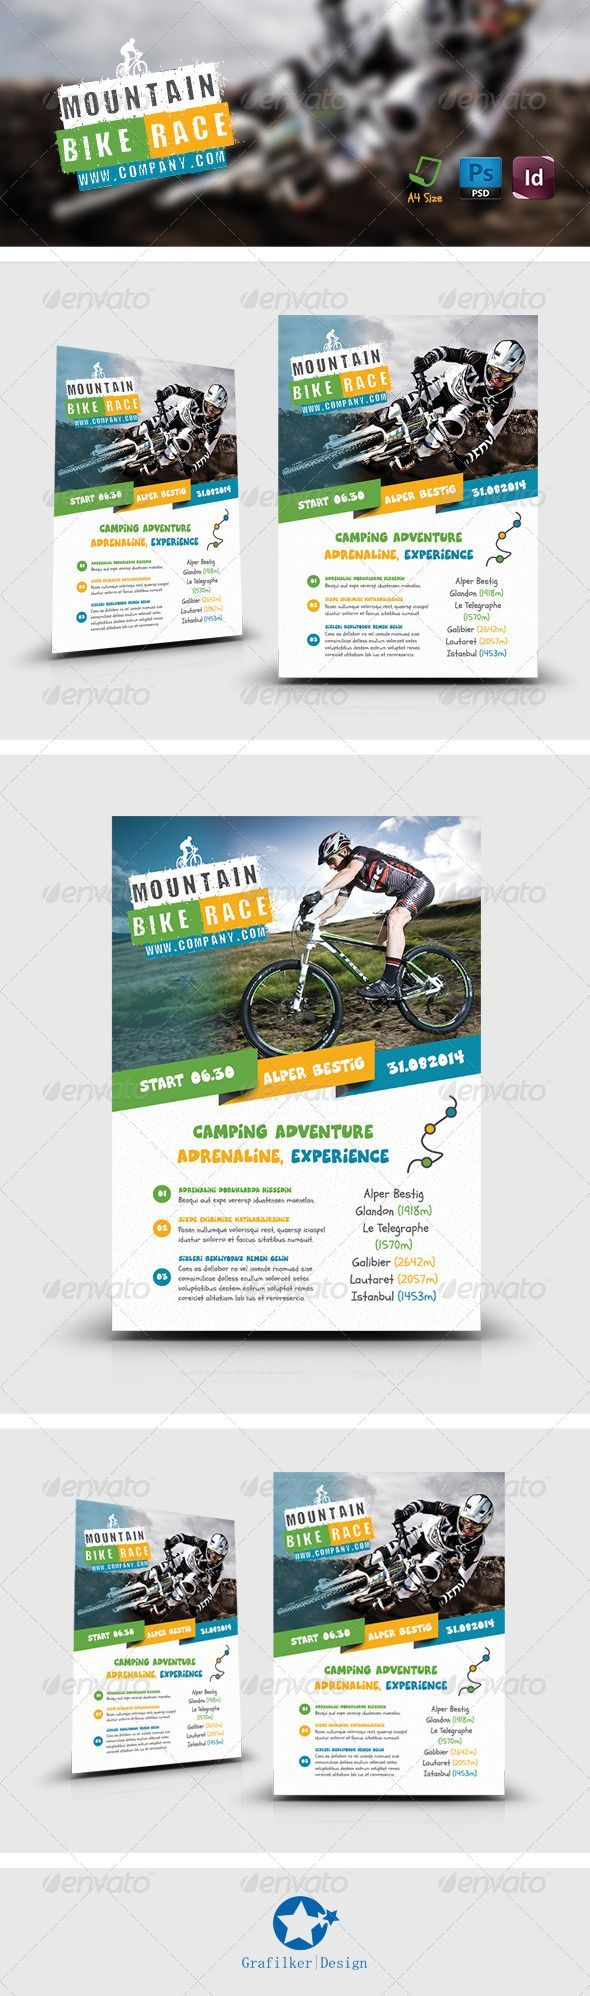 Bicycle Racing Flyer PSD Template  Buy and Download: http://graphicriver.net/item/bicycle-racing-flyer-templates/8234511?WT.ac=category_thumb&WT.z_author=grafilker&ref=ksioks: